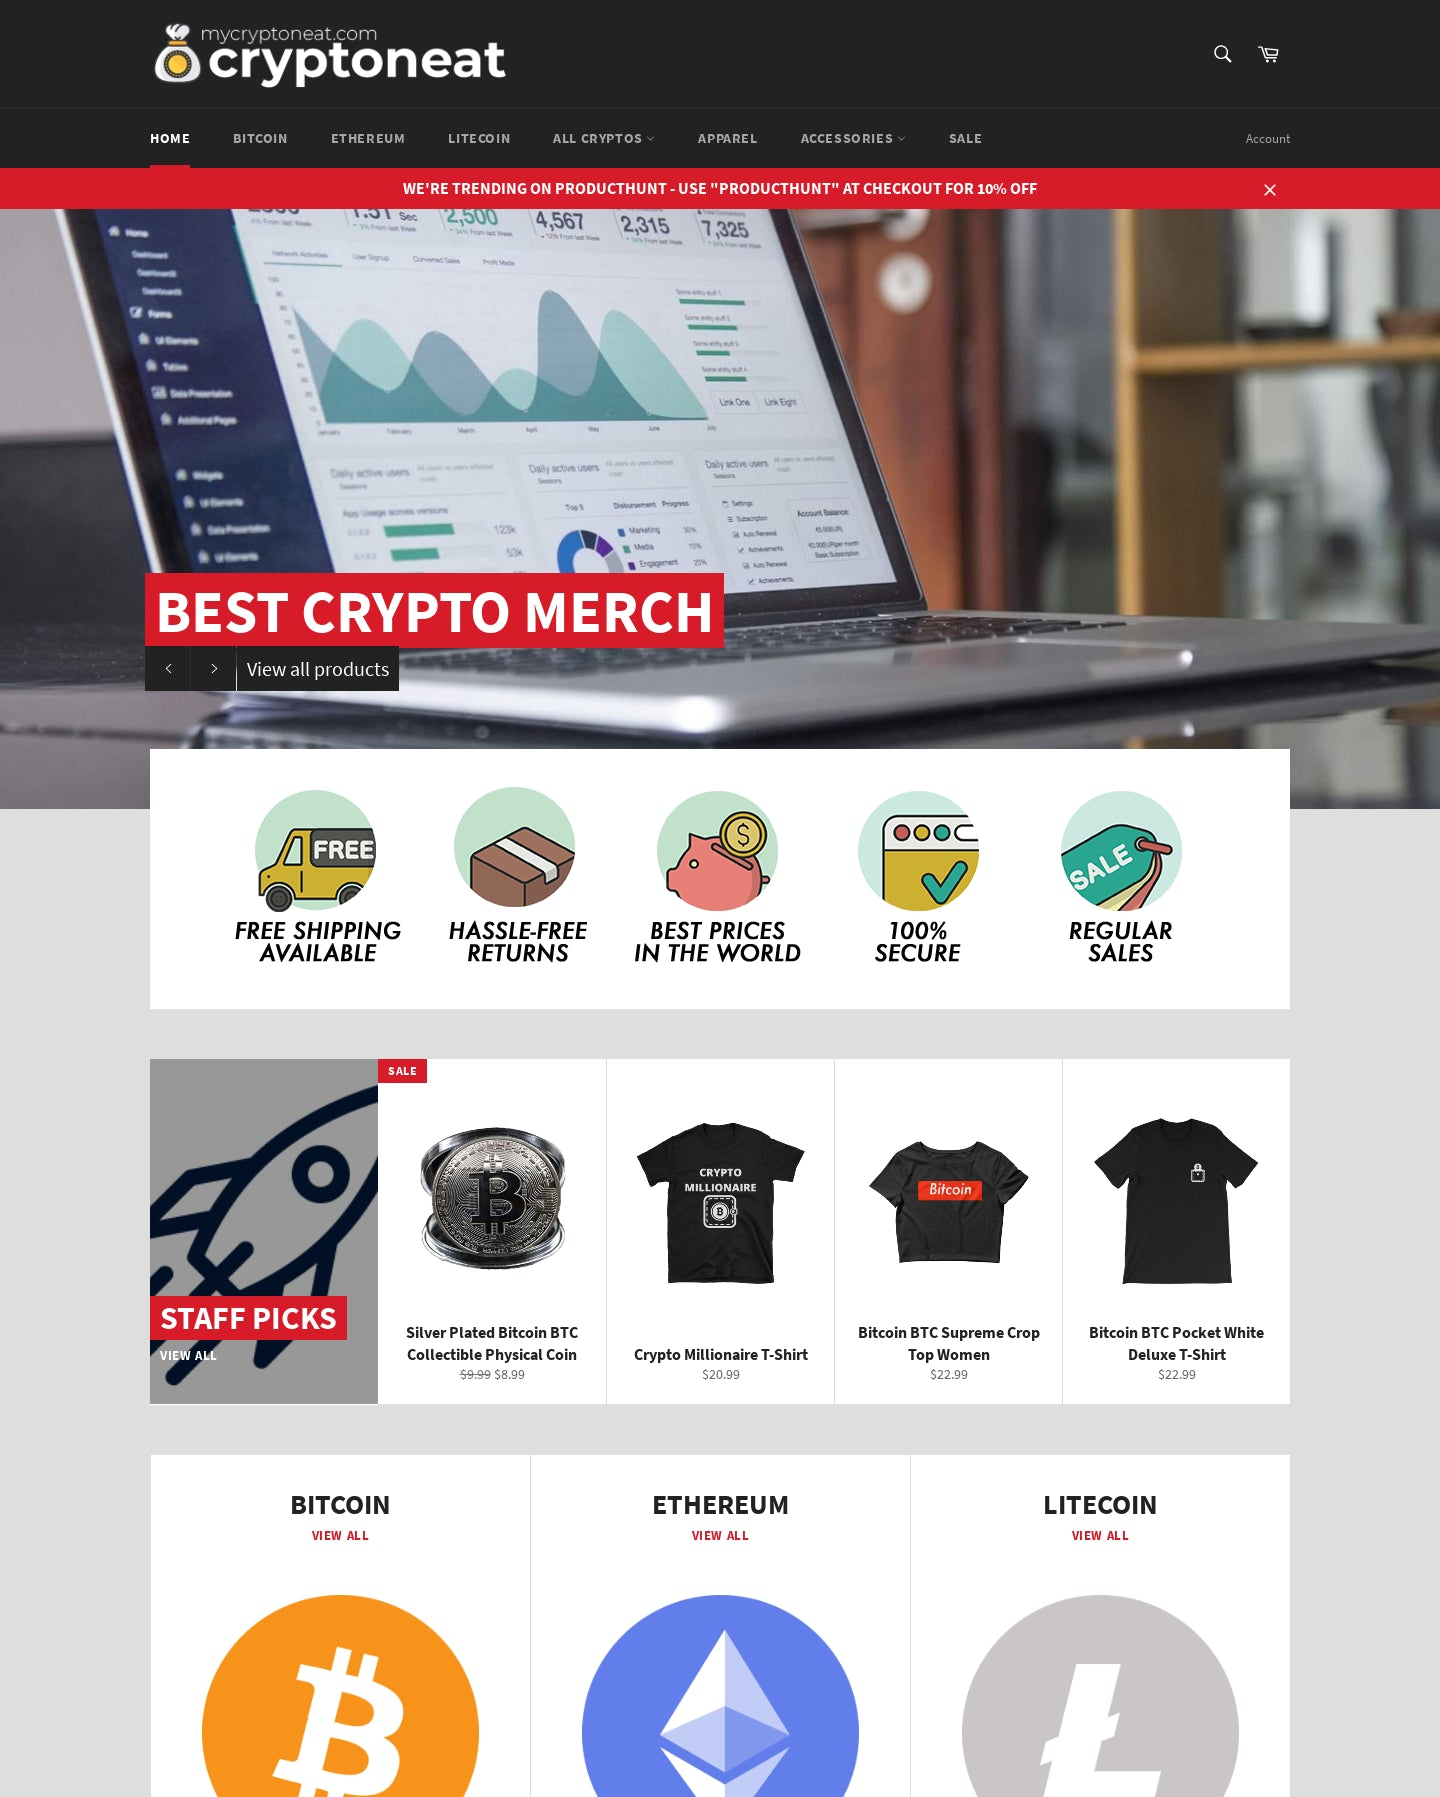 MyCryptoneat.com - Shop the best bitcoin t-shirts, apparel, and merch! Browse the 15 top altcoins cryptocurrency clothing (ETH, LTC, XRP, XLM,...). Screenshot - 6